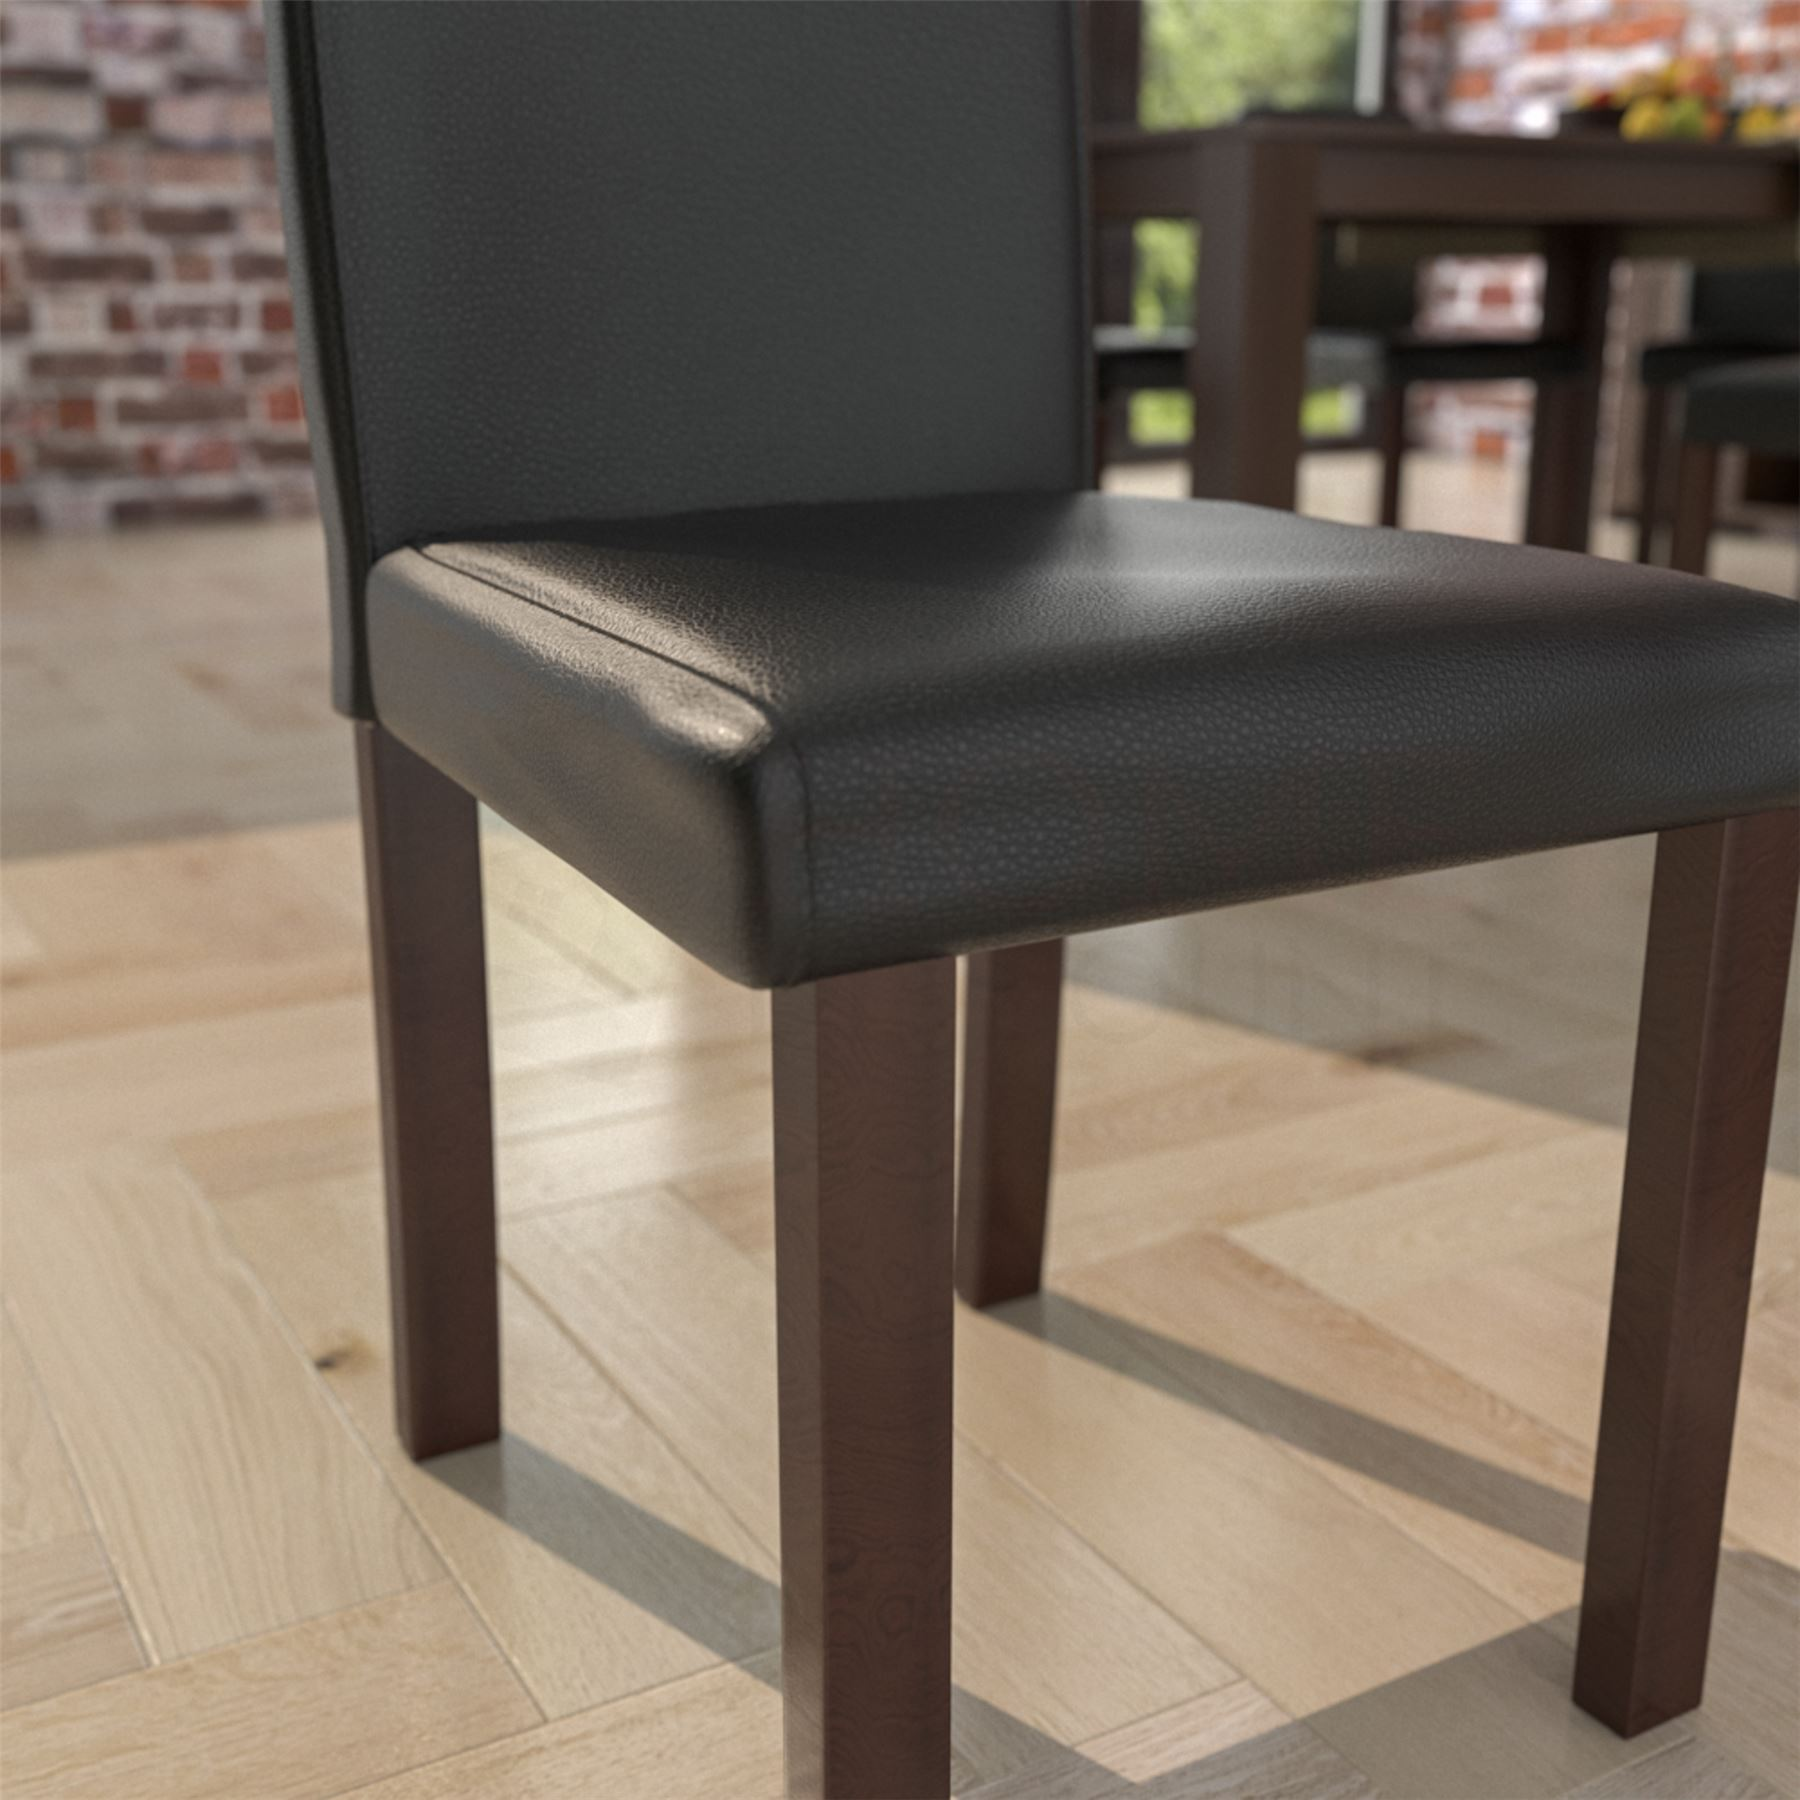 Best Fabric For Dining Room Chairs: Dining Chairs Faux Leather Fabric Padded Seat Wood Roll Top Kitchen Dining Room